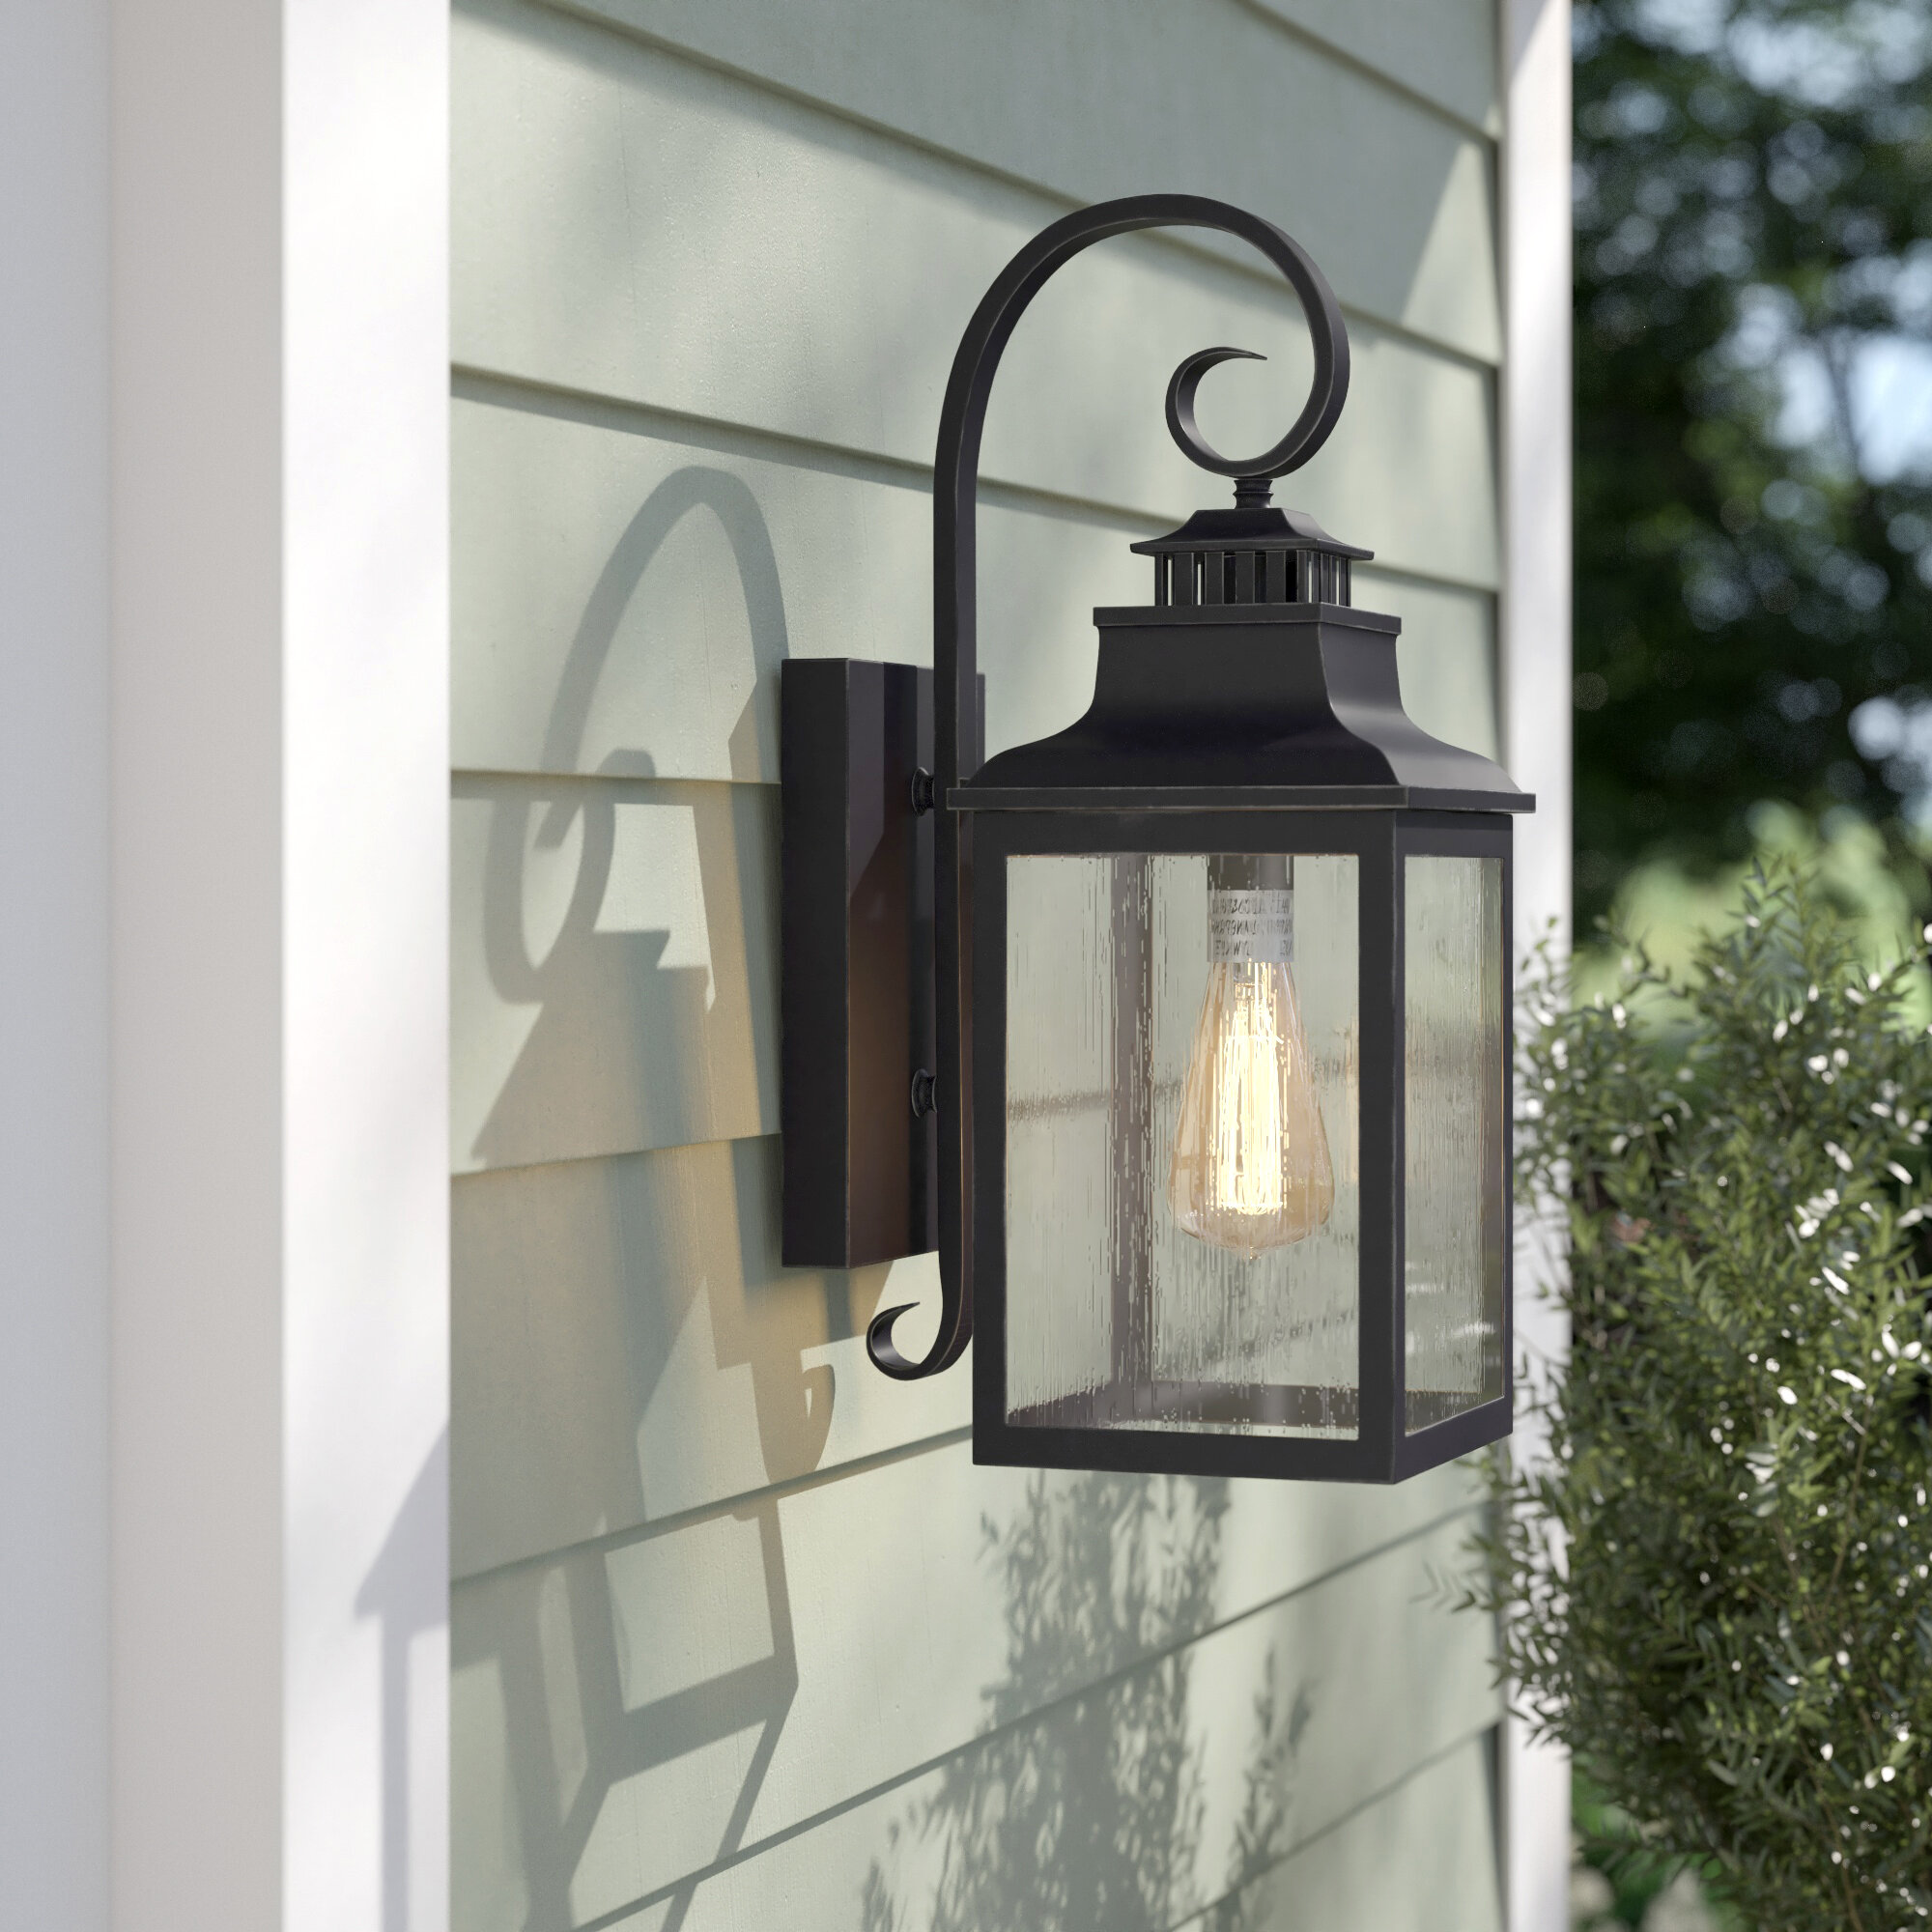 Large Outdoor Wall Lighting You Ll Love In 2021 Wayfair